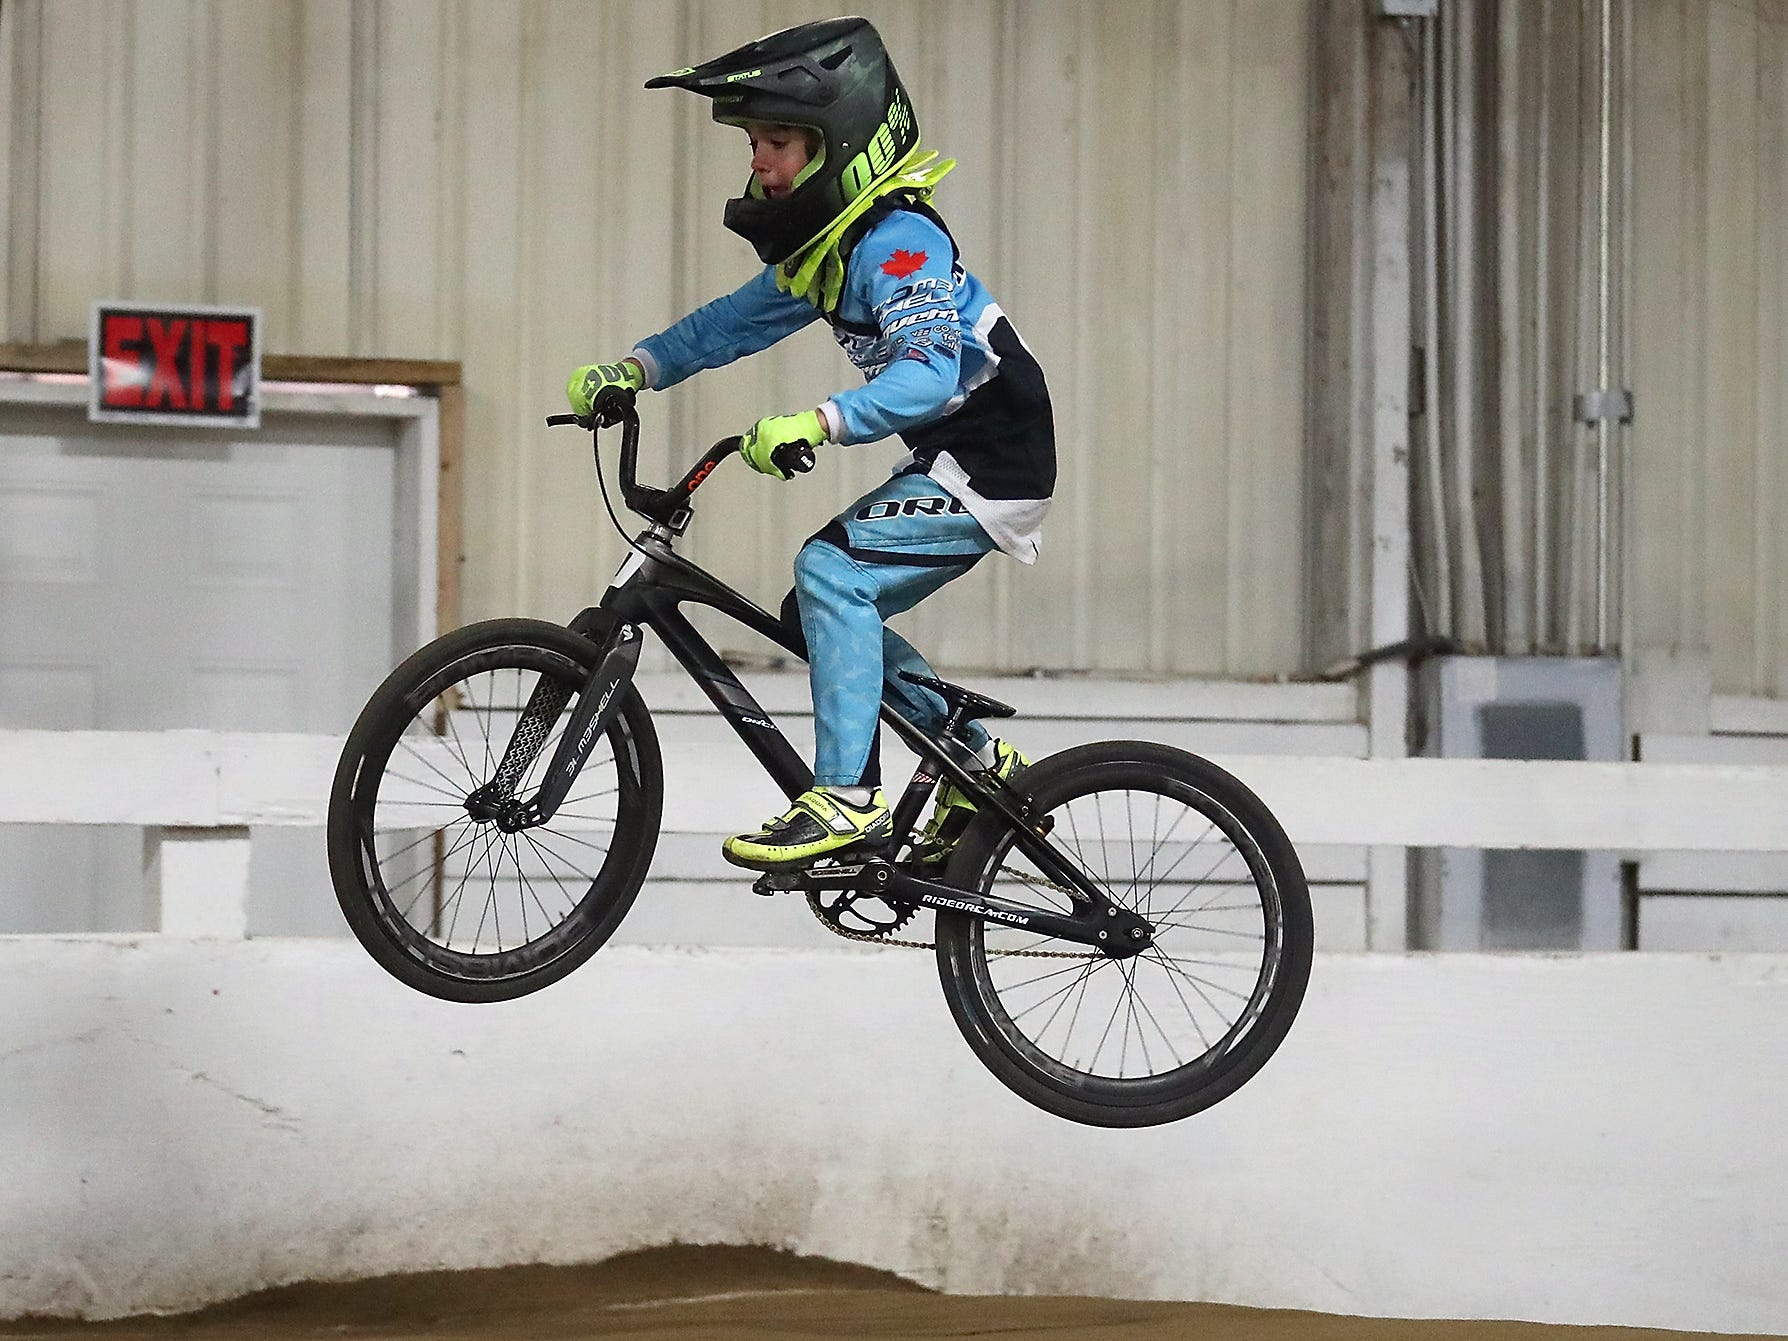 Wyatt Christensen, 6, of Kingston, rides the track at Peninsula Indoor BMX in Port Orchard on Saturday, December 8, 2018. Christensen won a national championship for his age group at the USA Grand National Championship races in Tulsa in November, and next year he'll compete at the UCI World Championships in Belgium.